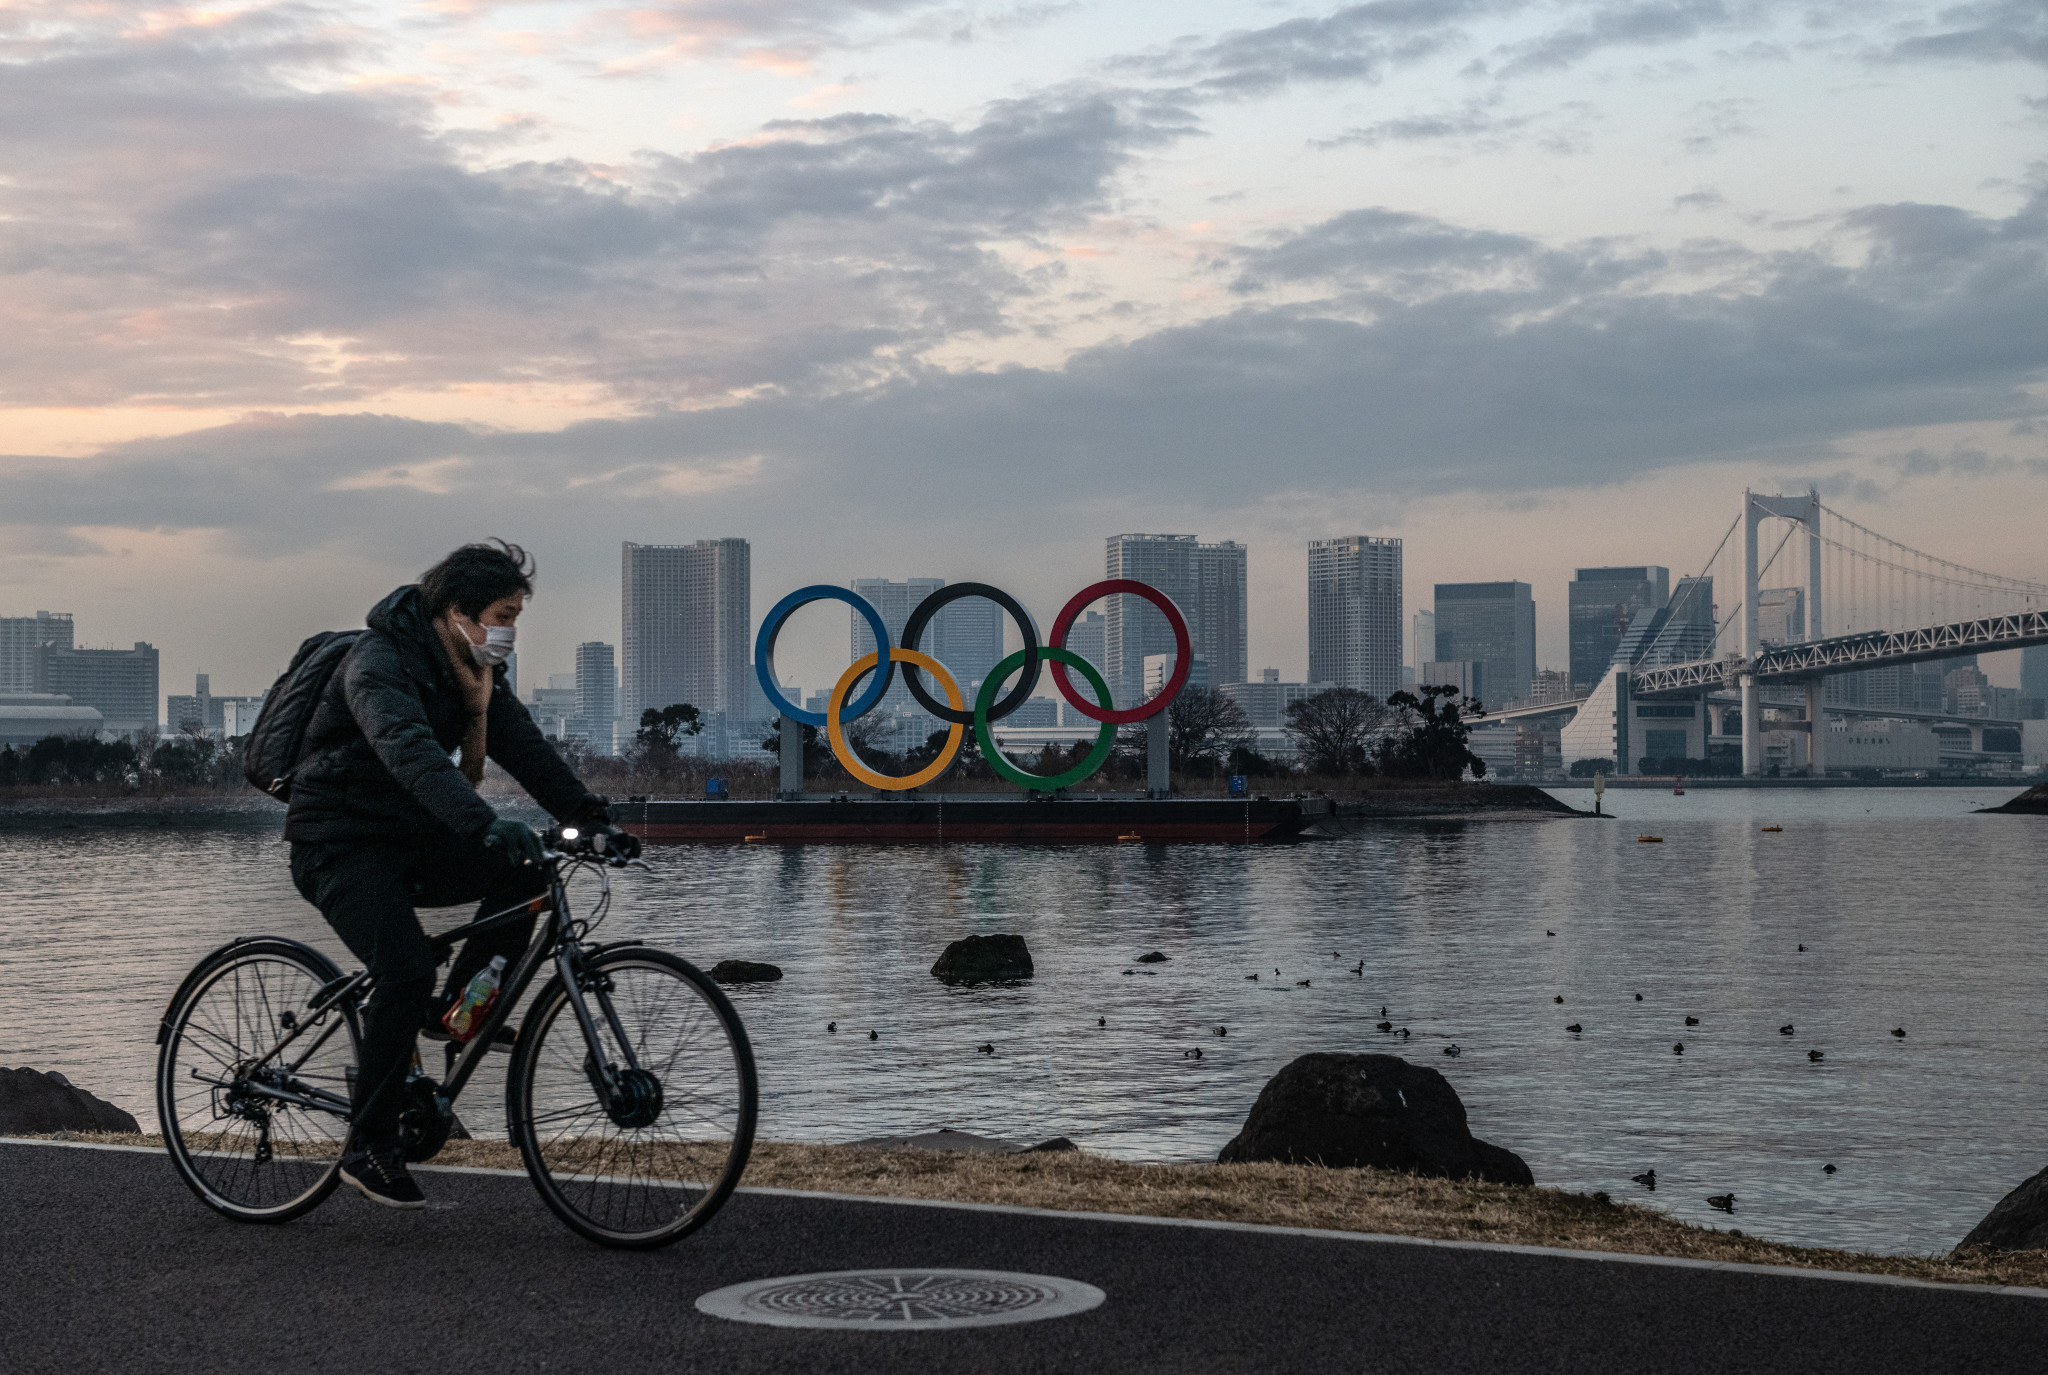 Polls show public support for staging the Olympics and Paralympics this year is low in Japan ©Getty Images